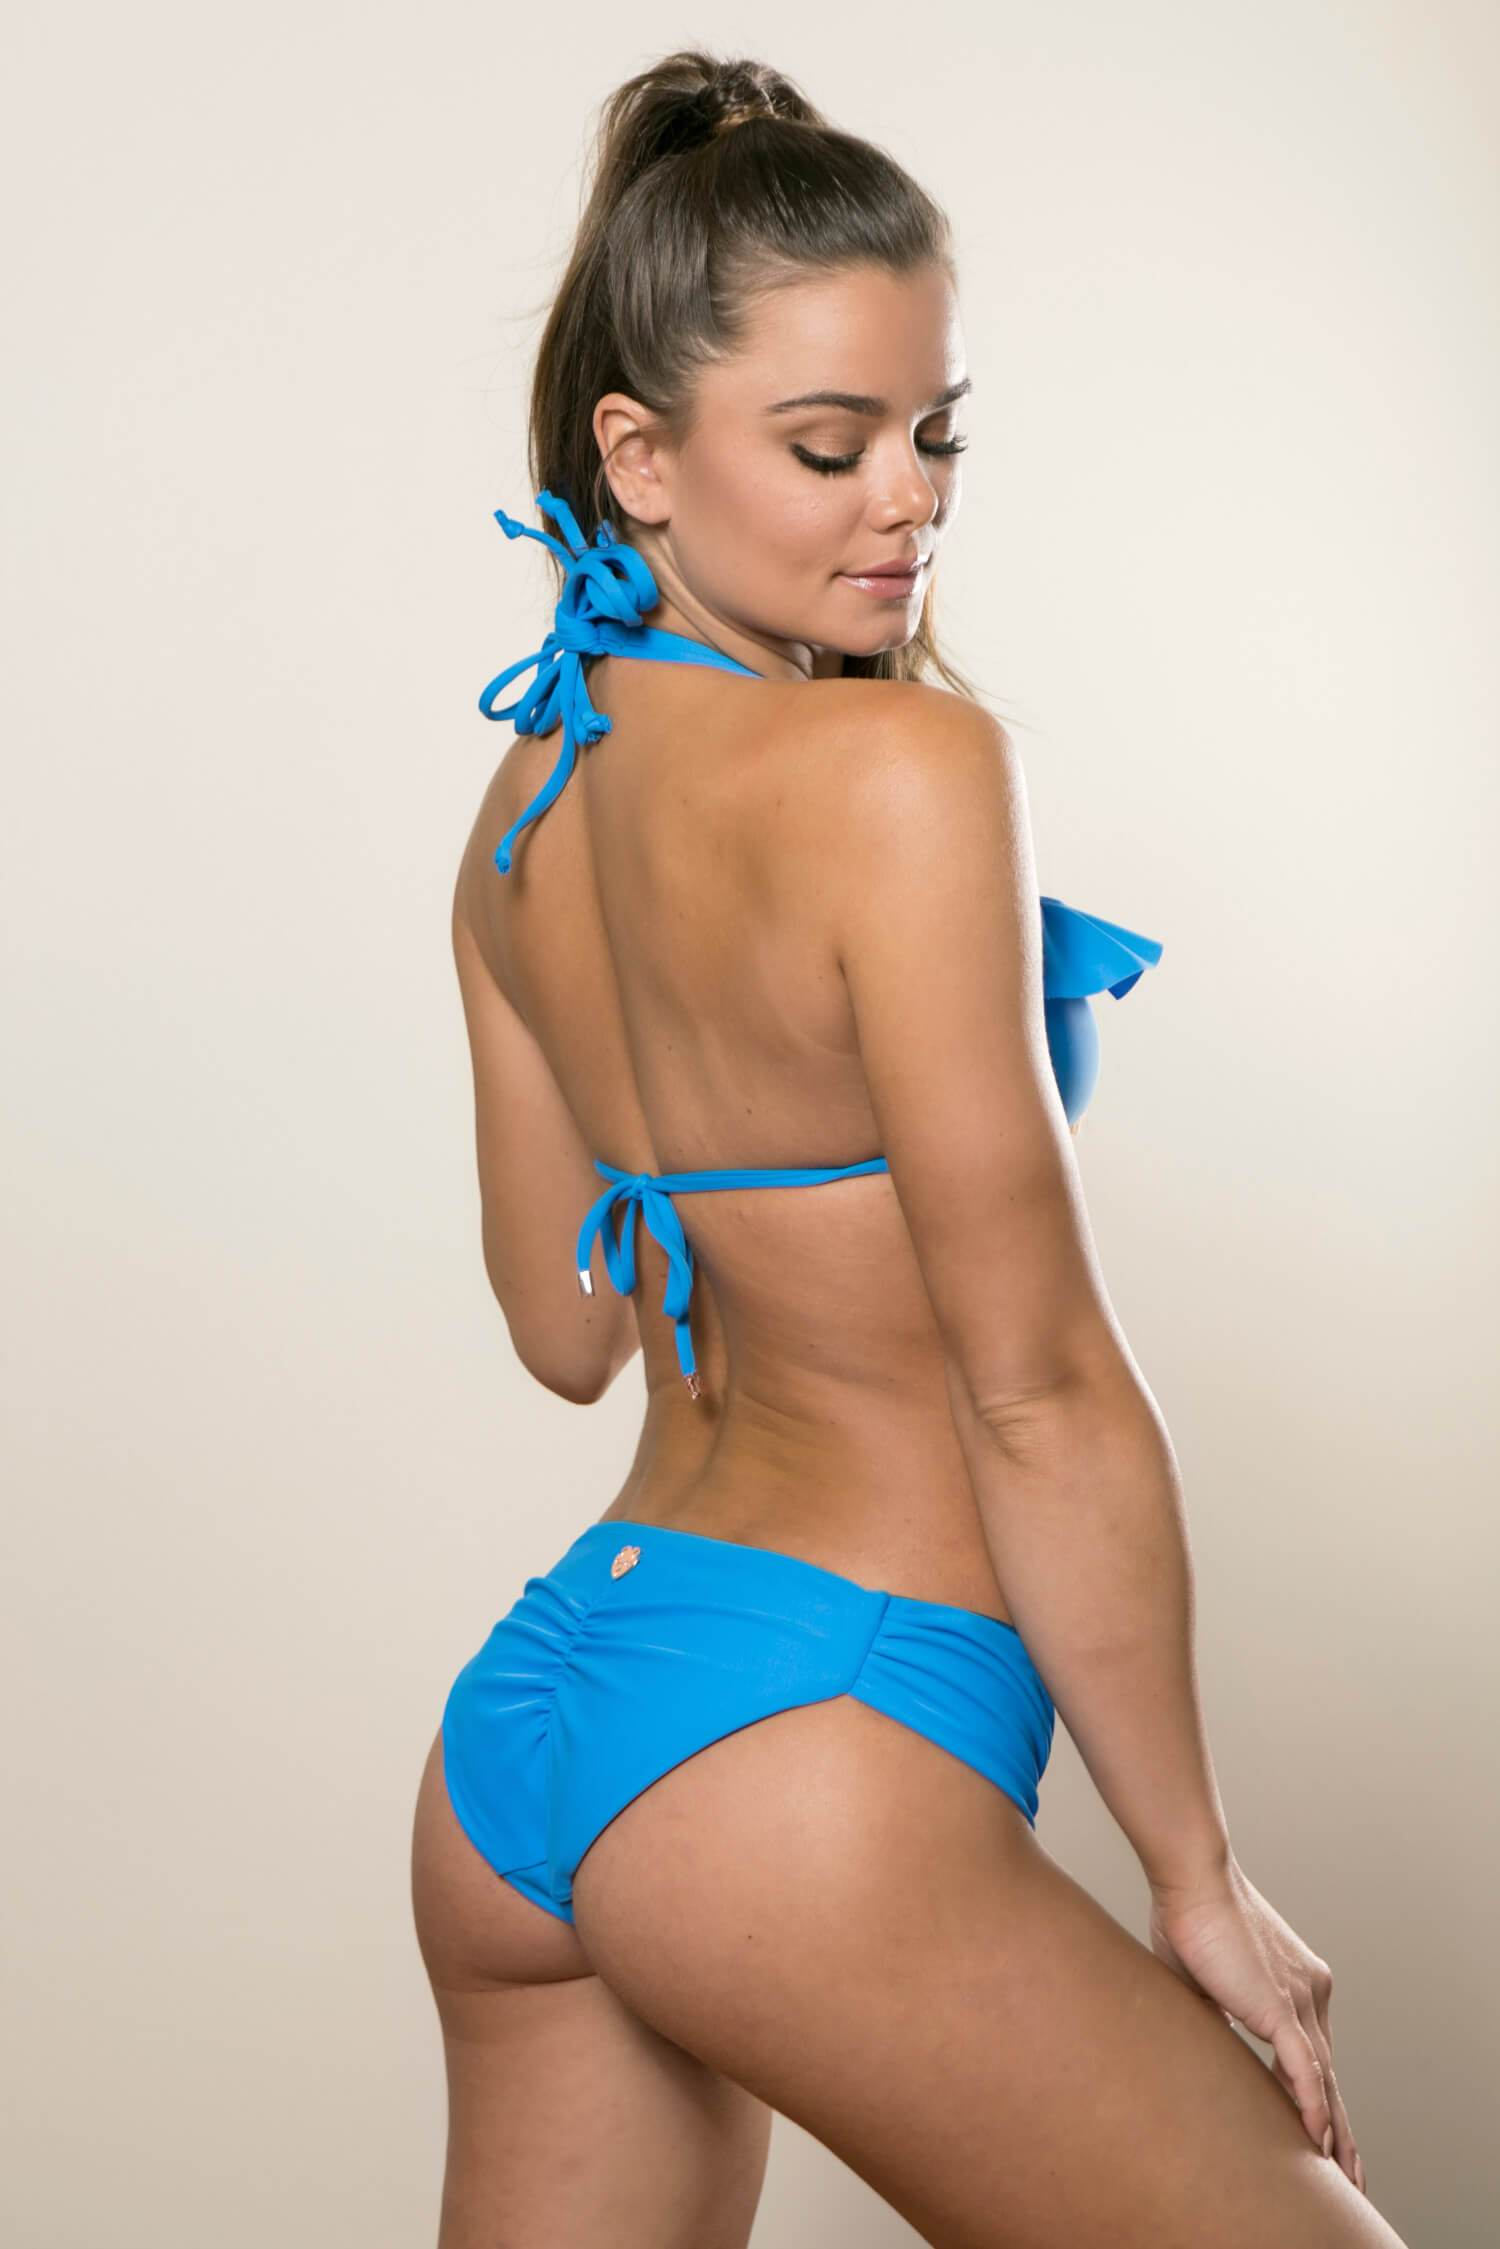 Ruffle Strappy Top with Hipster Bottoms Swimsuit Set - Electric Ocean Blue